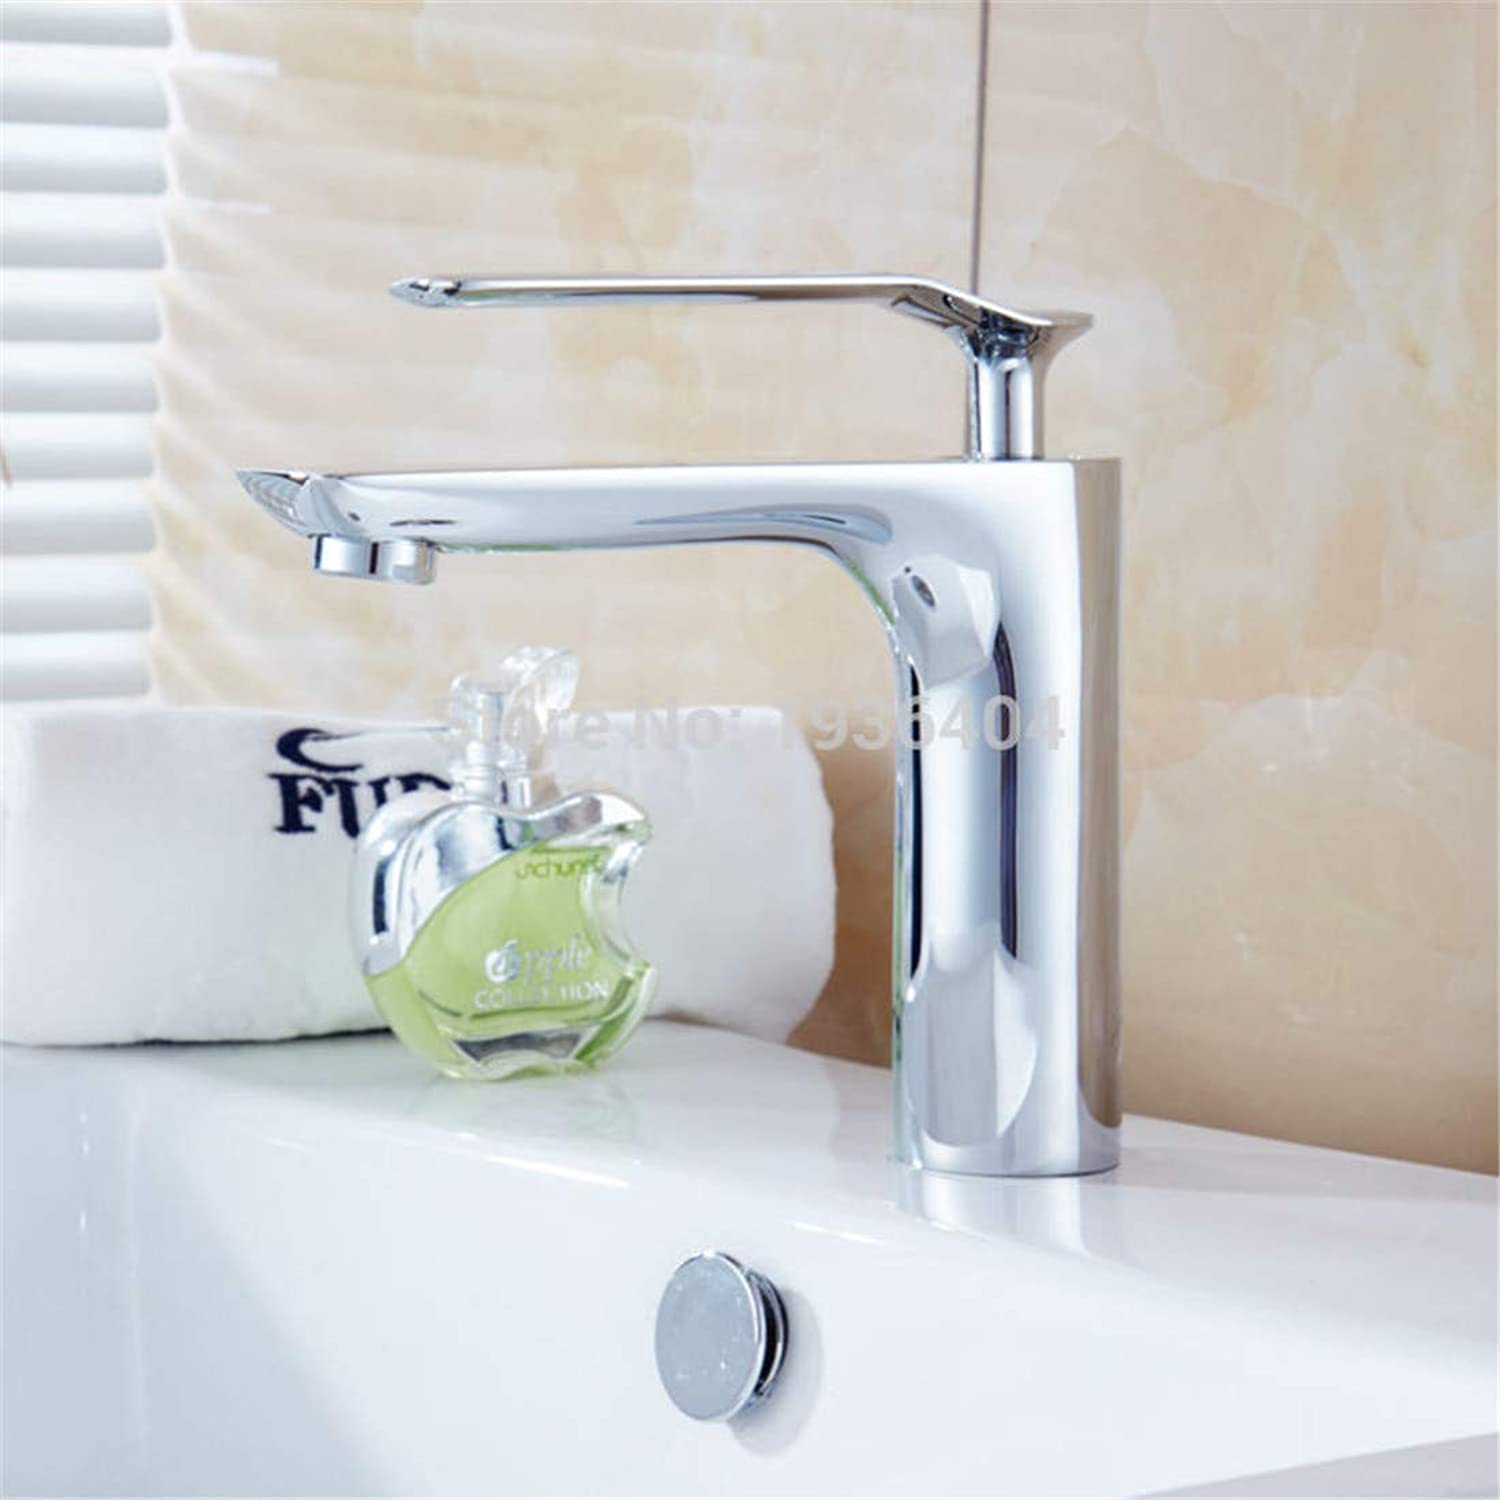 Retro Hot and Cold Faucet Retrochrome Bathroom Hot & Cold Mixer Waterfall Basin Sink Wash